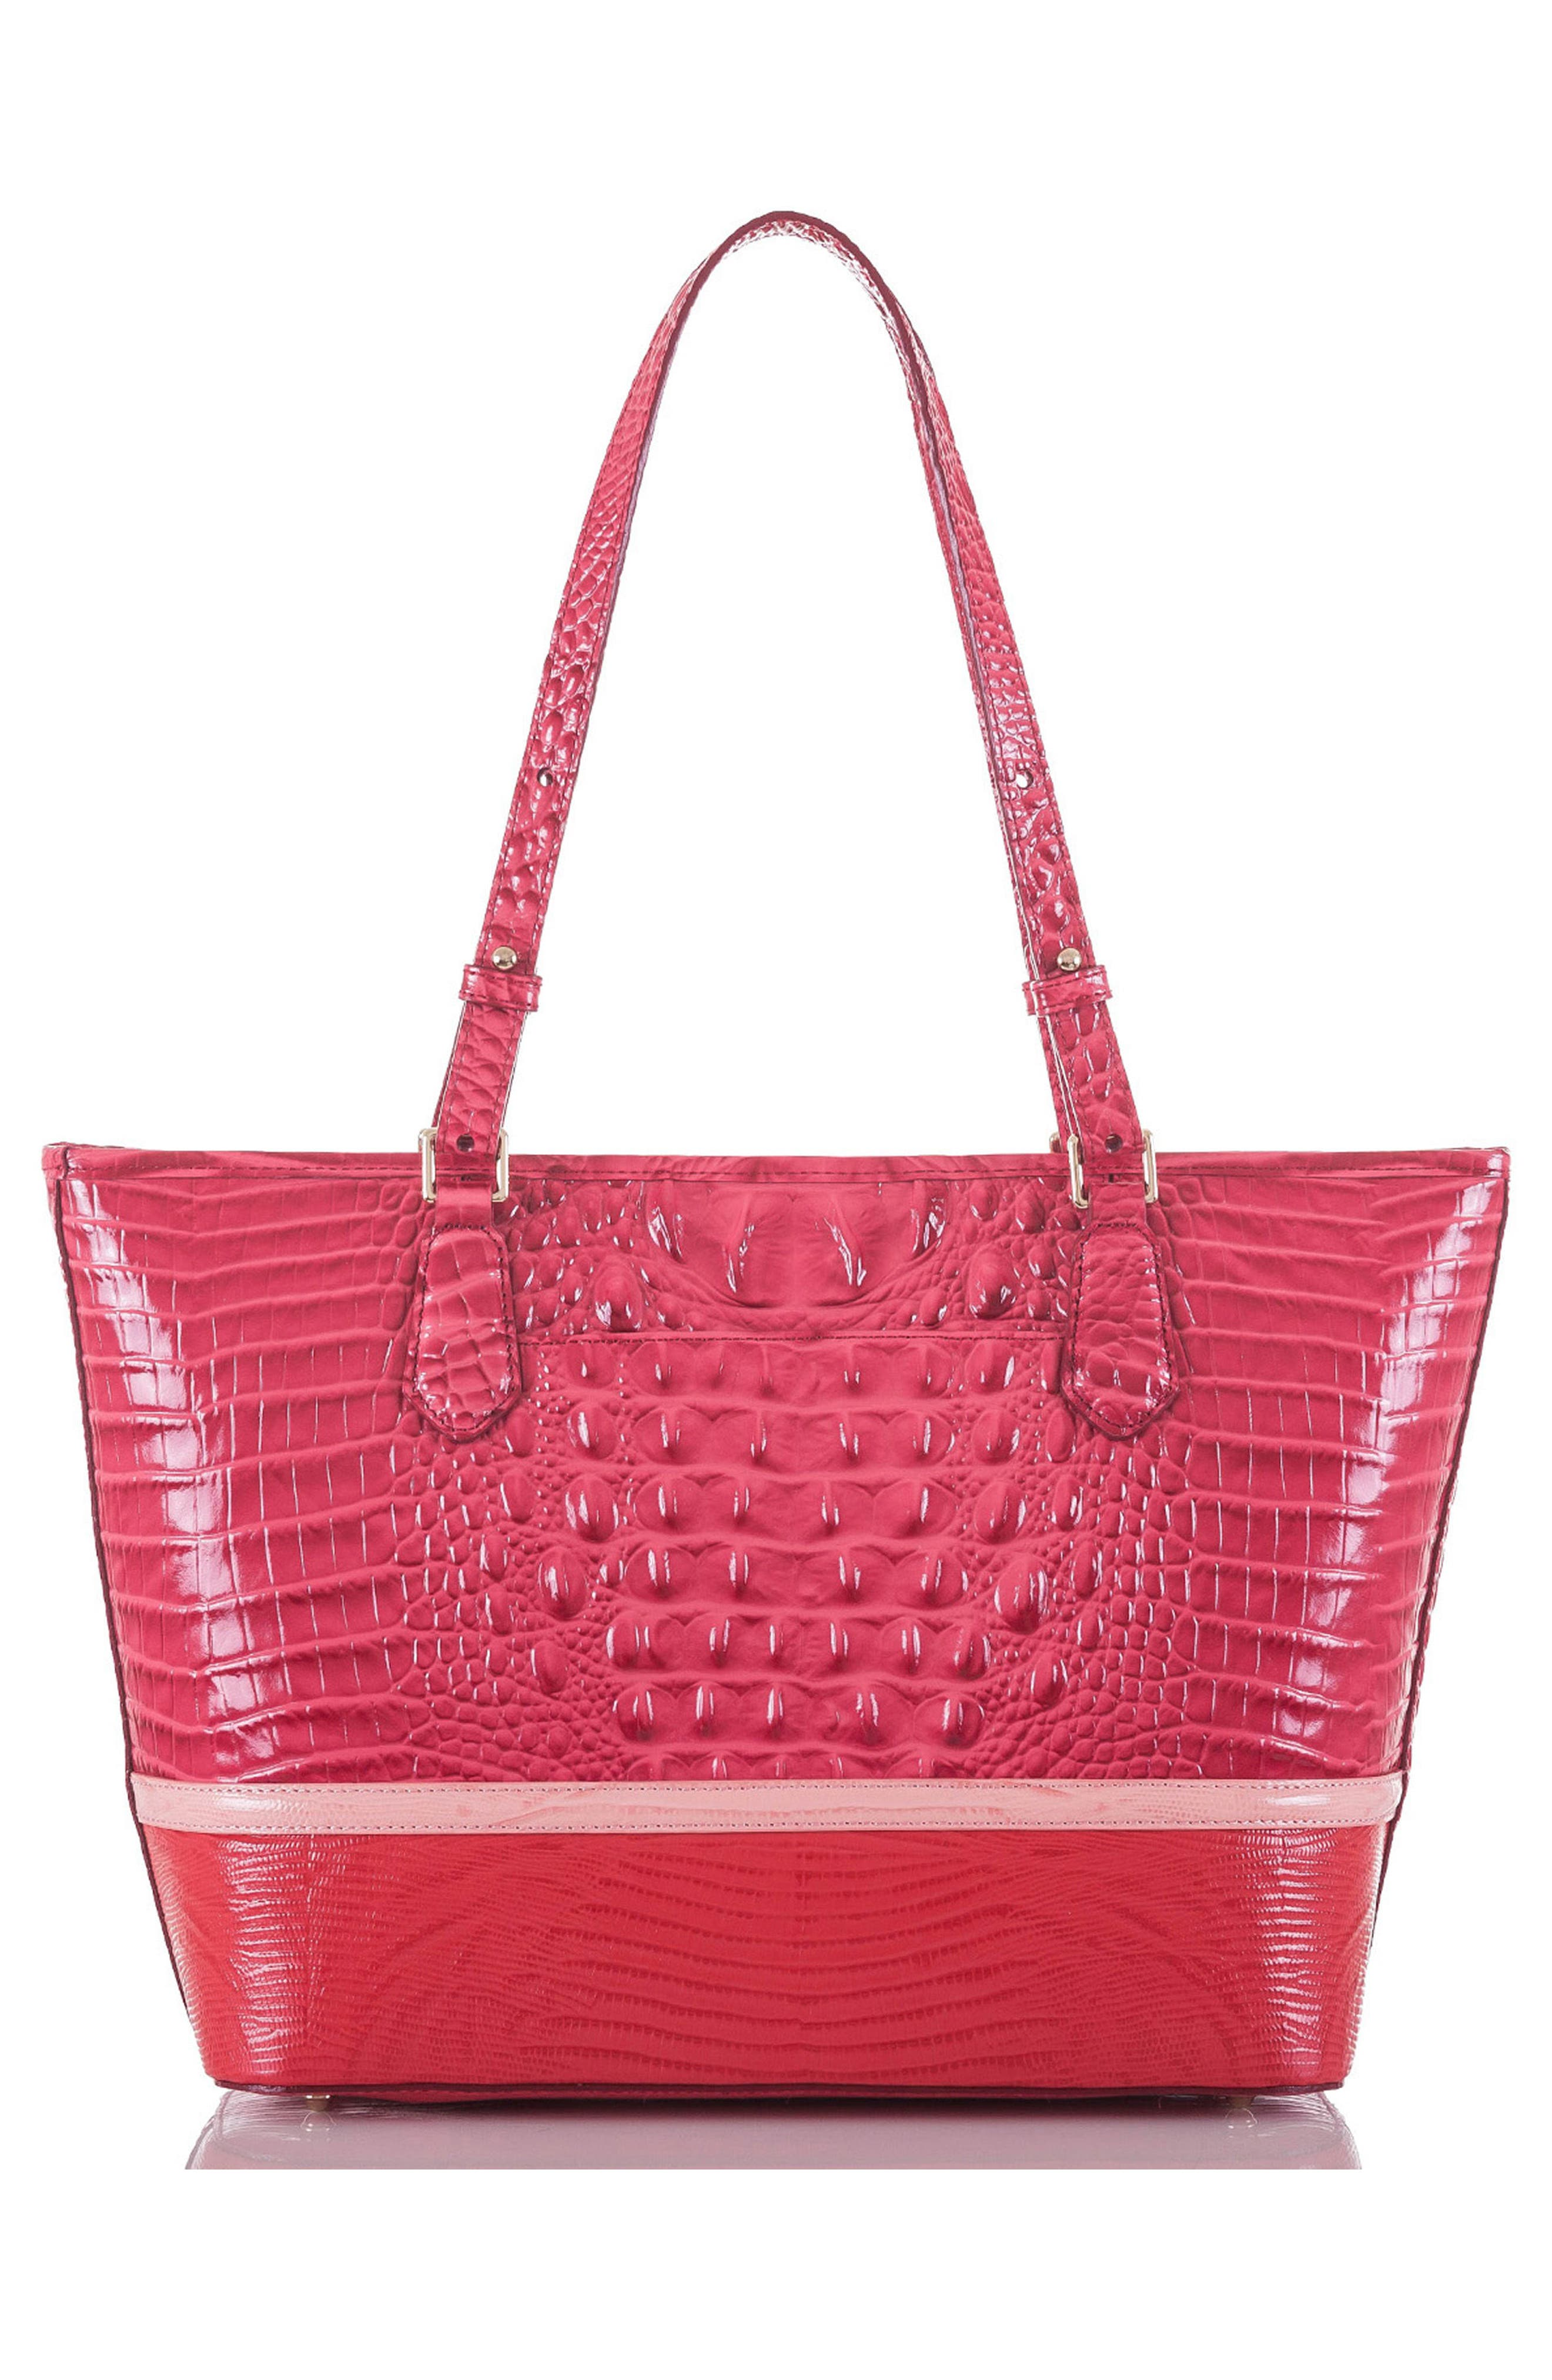 Medium Asher Embossed Leather Tote,                             Alternate thumbnail 2, color,                             650